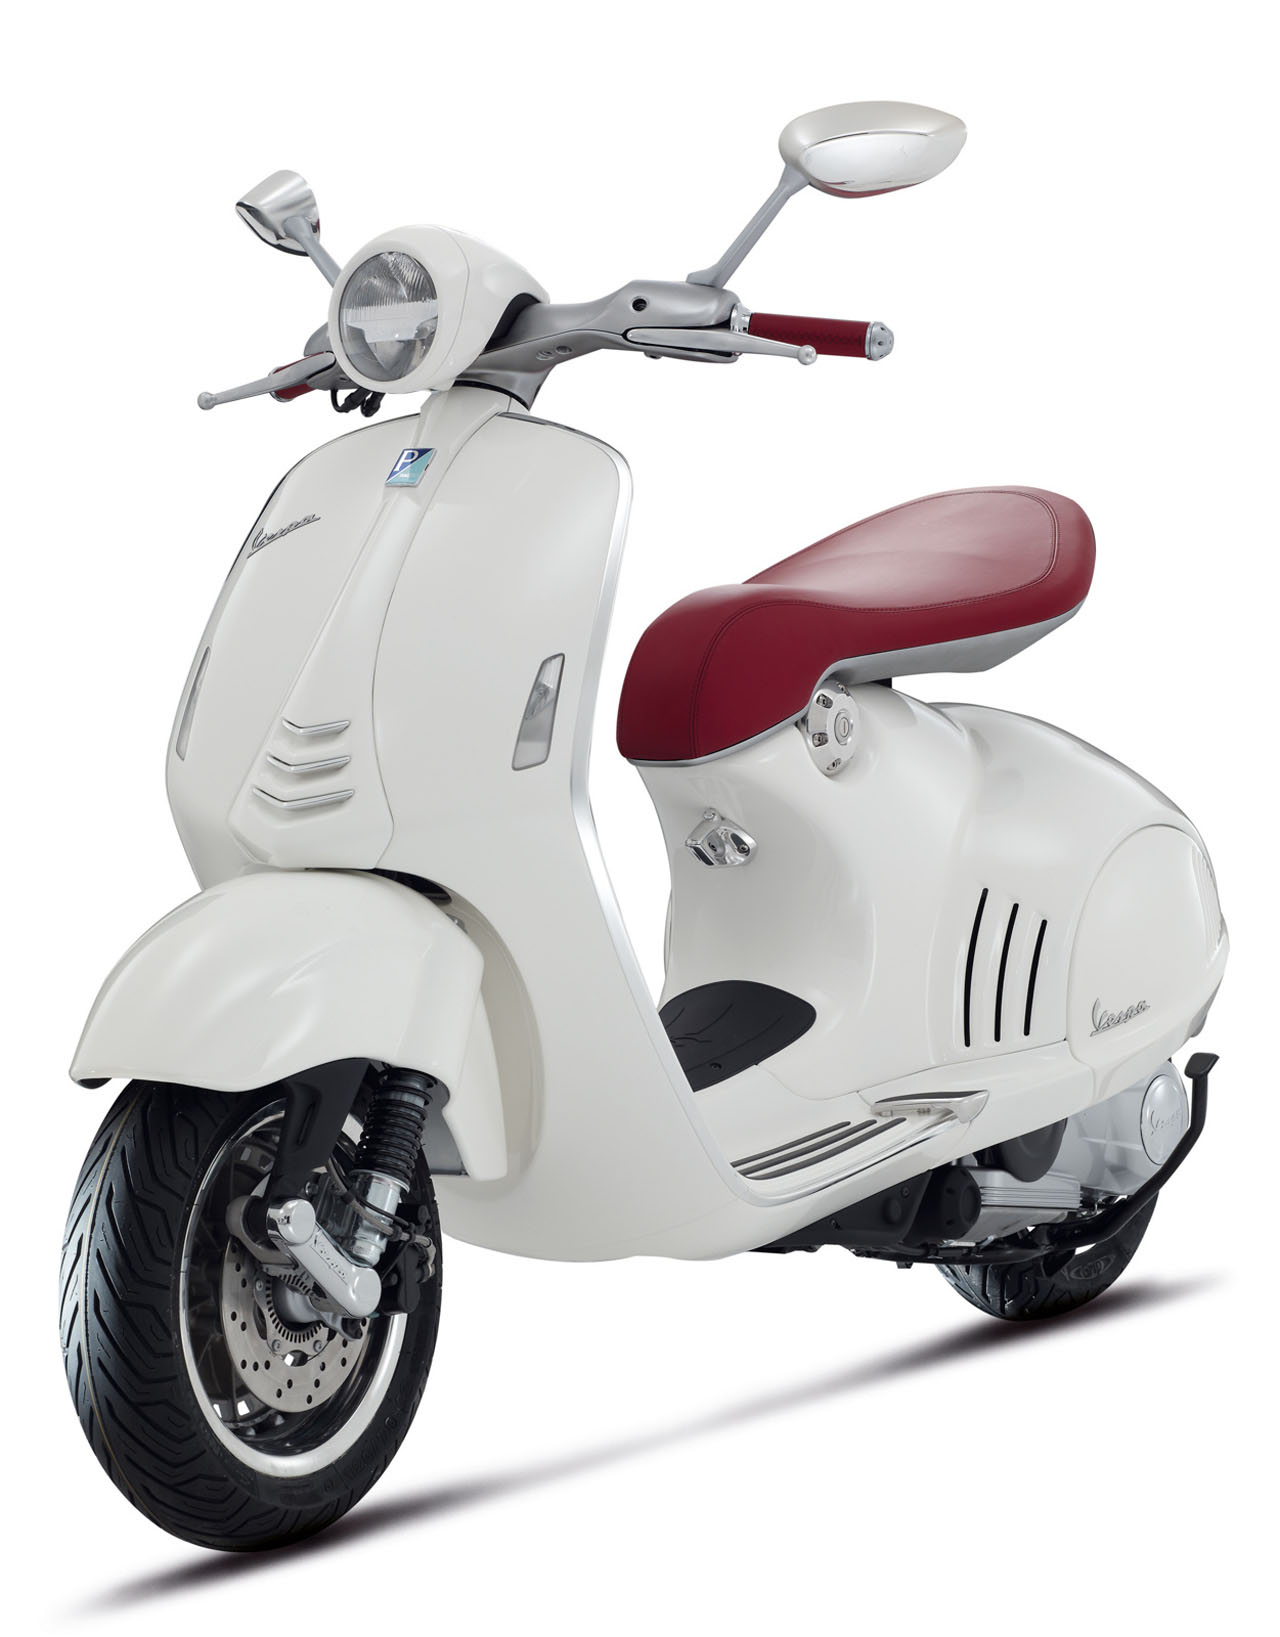 2013 Vespa 946 Photo Gallery - Autoblogvespa